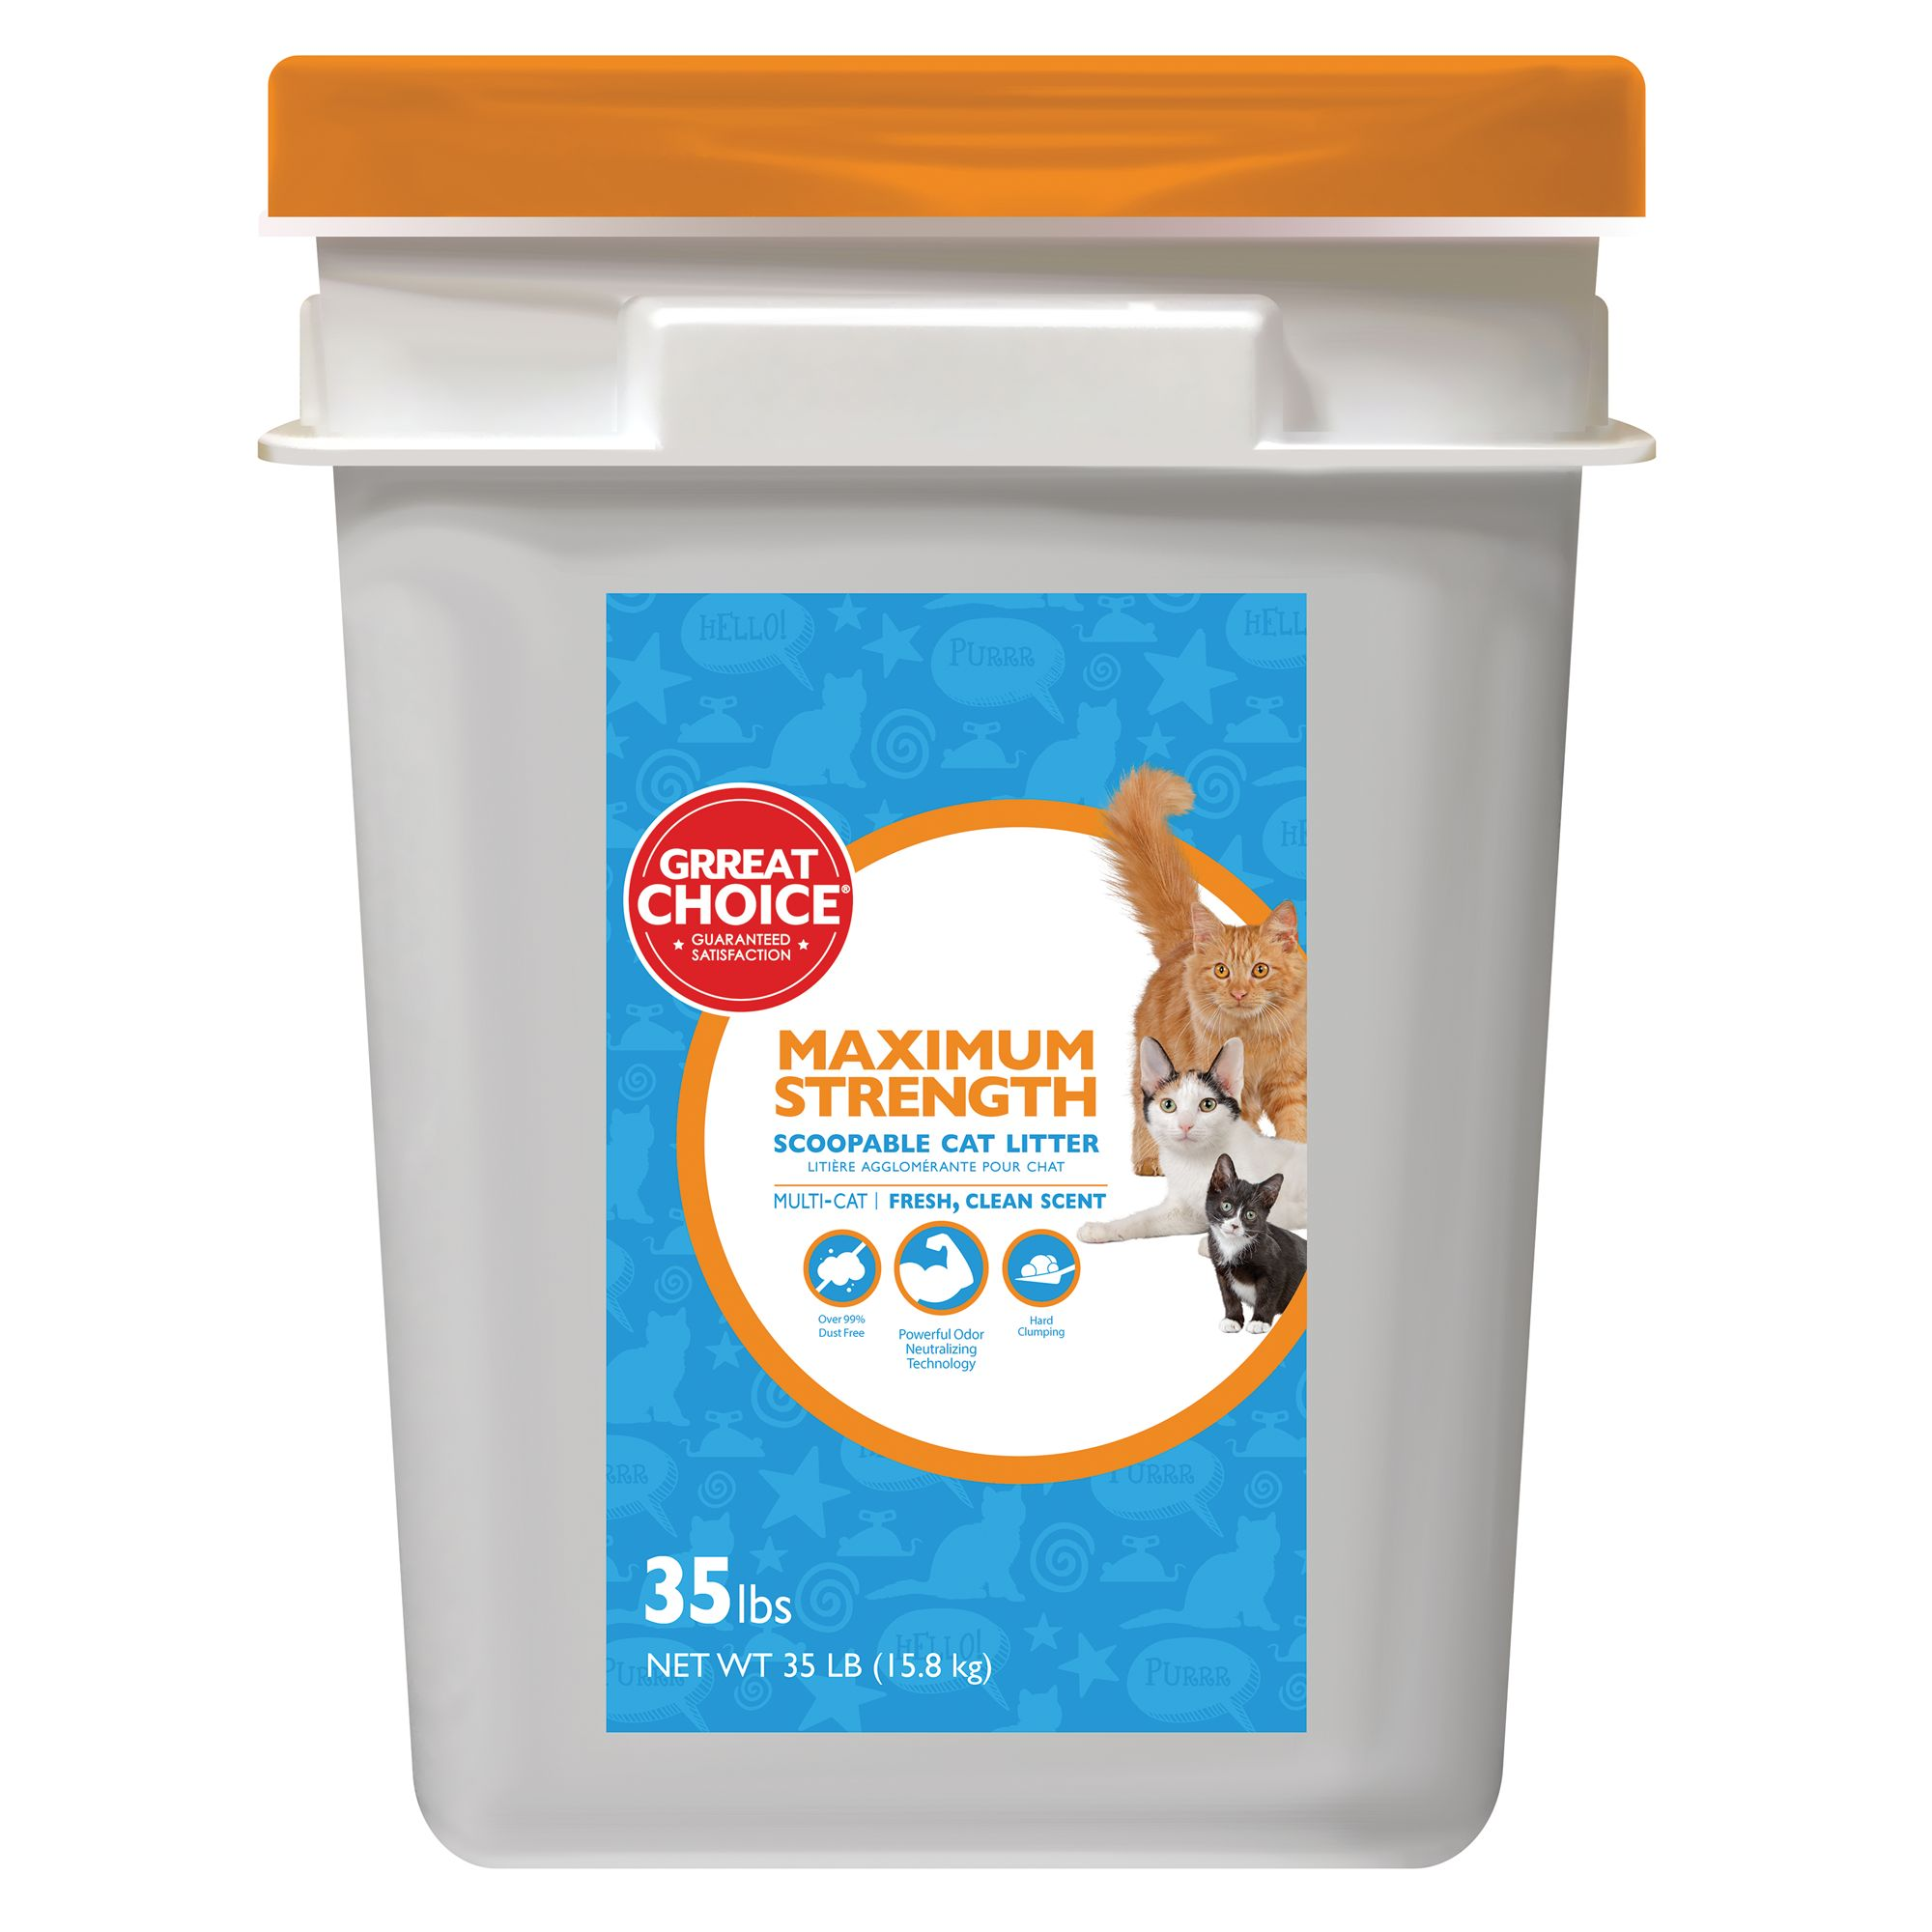 Grreat Choice® Maximun Strength Cat Litter - Scoopable, Muliti-Cat, Fresh Scent size: 35 Lb 5257268